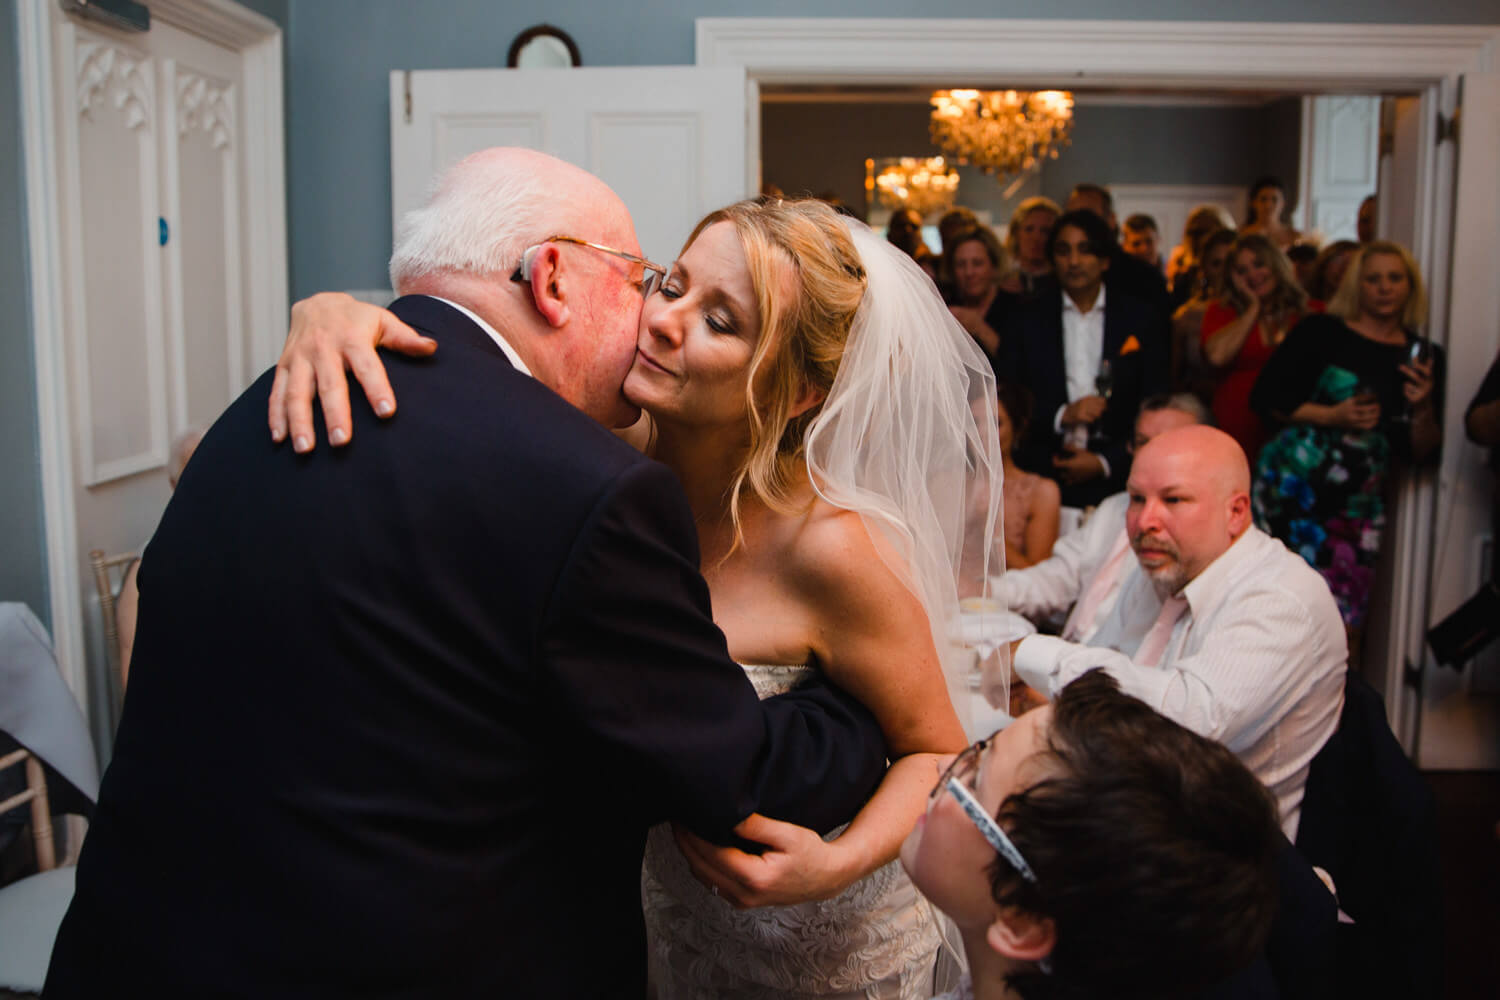 bride hugs father with wedding party looking on in background